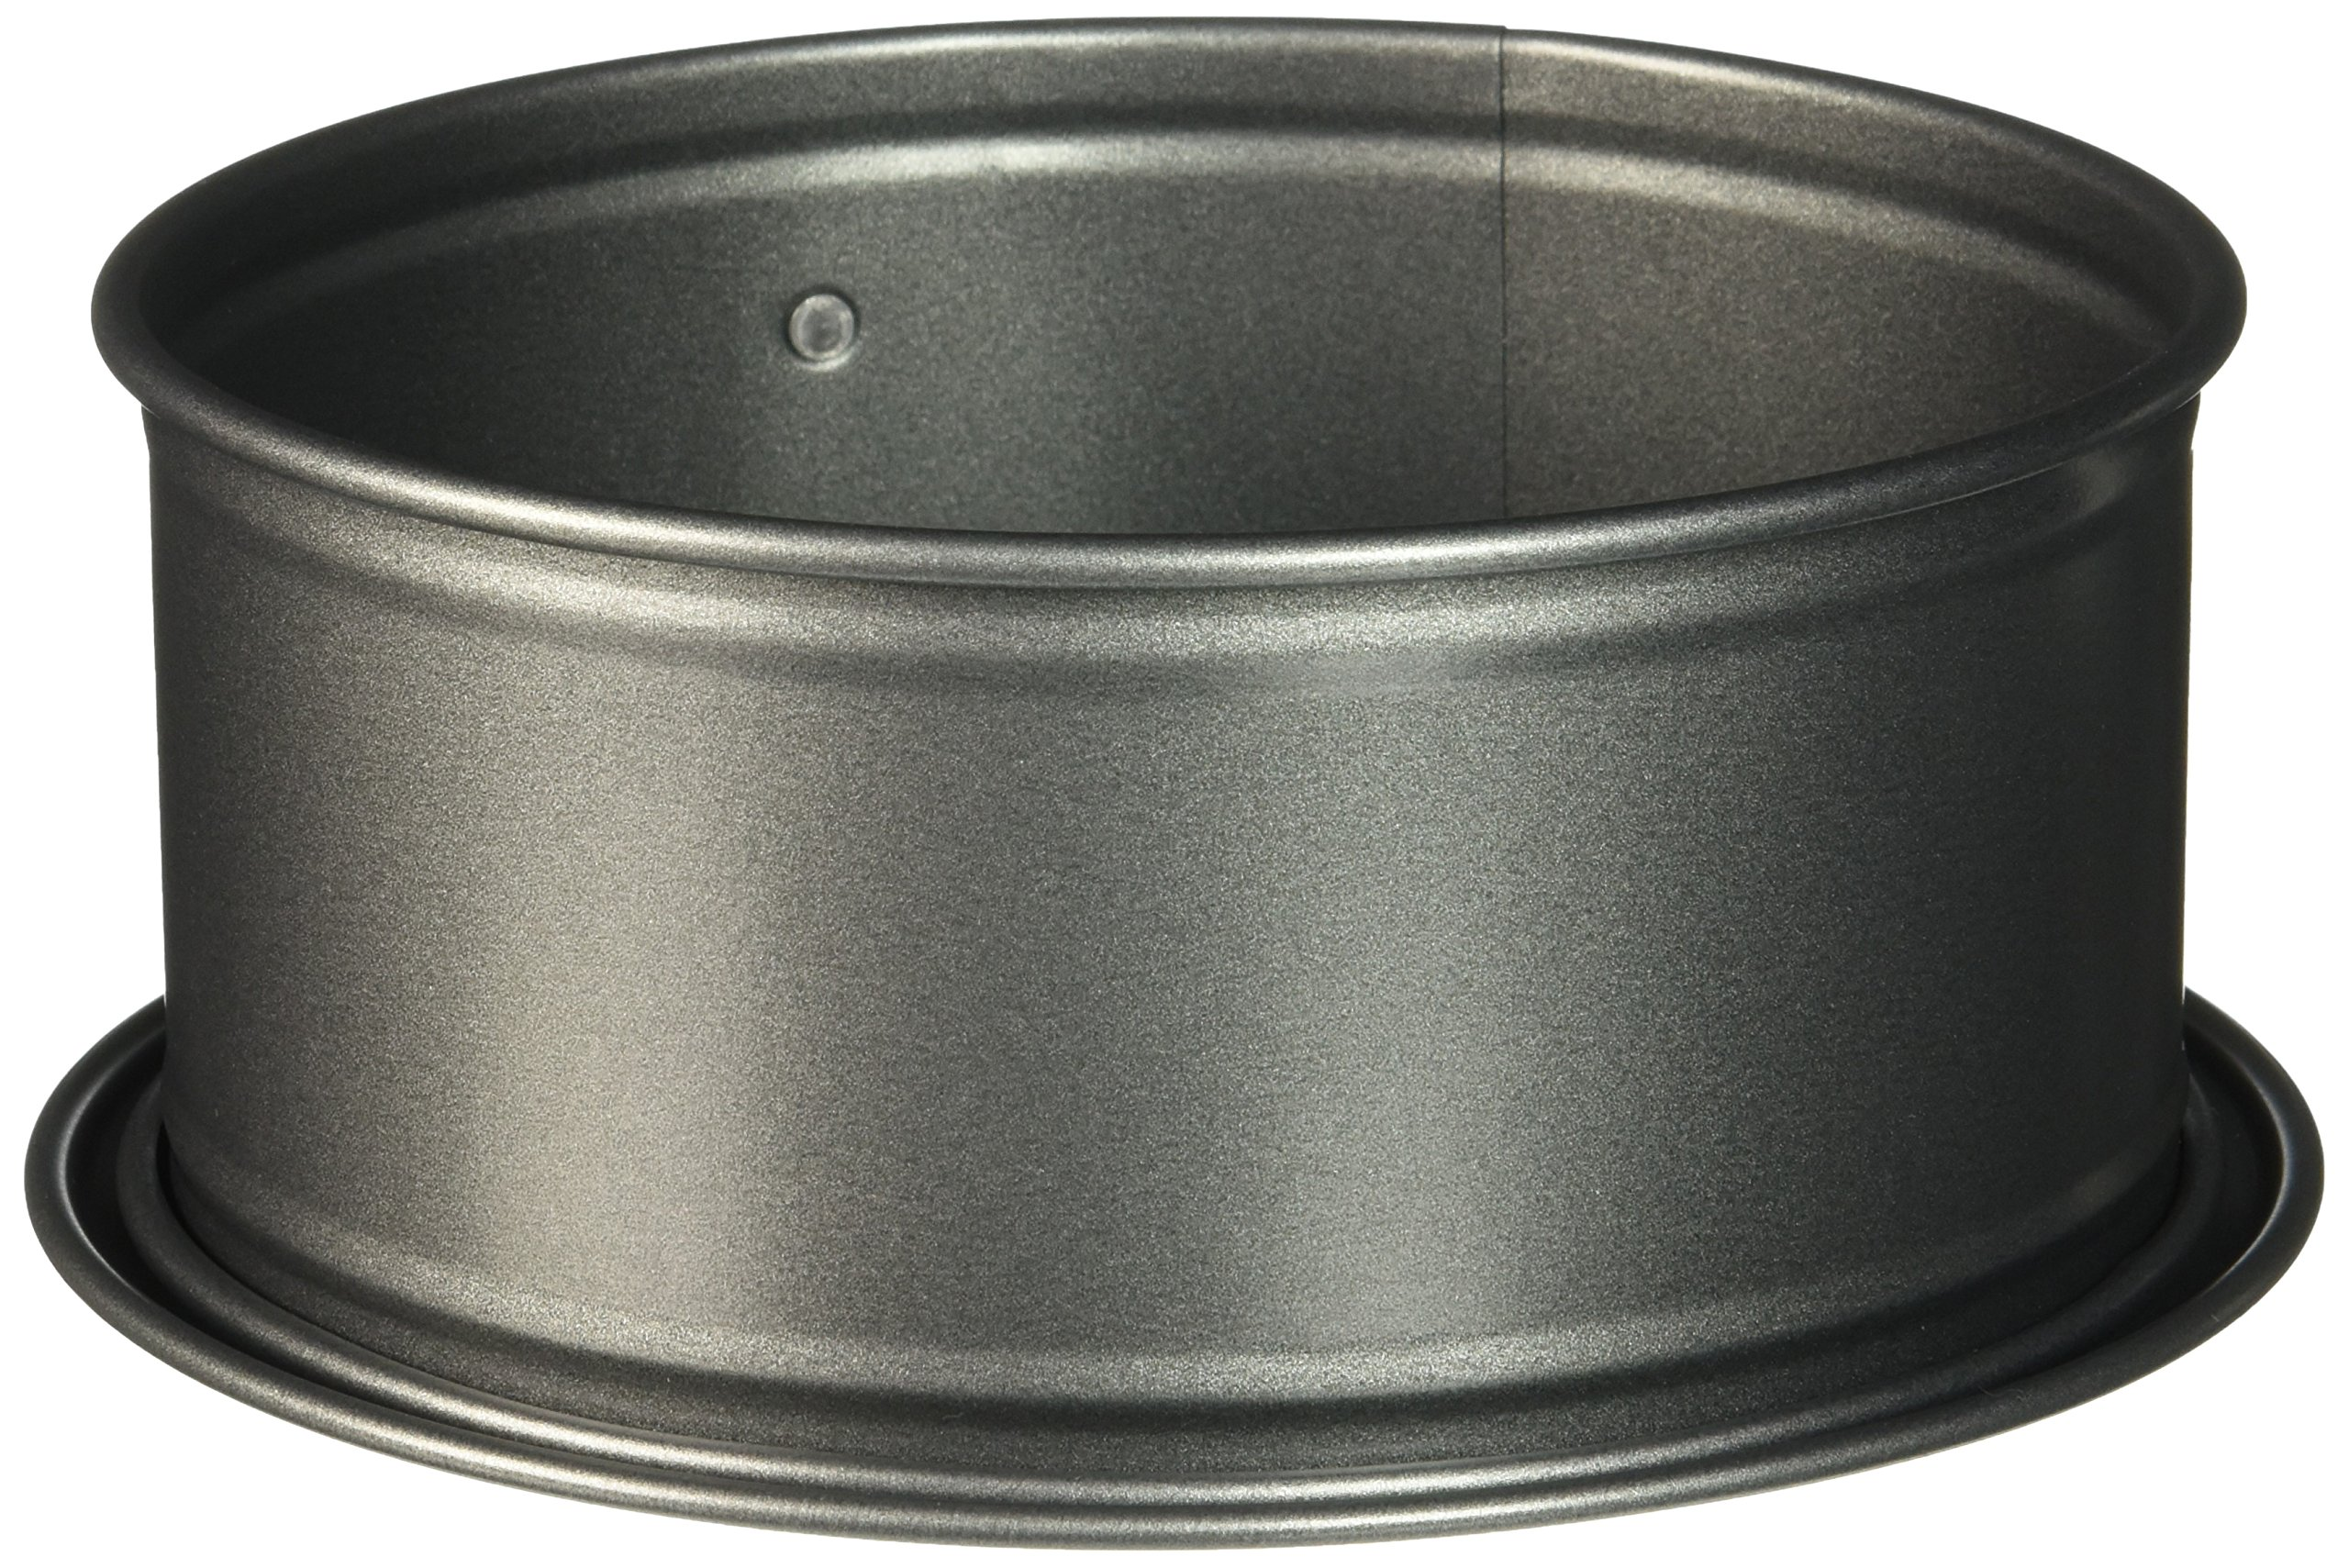 Nordic Ware 51842 Leakproof Springform Pan, 7 Inch, Charcoal by Nordic Ware